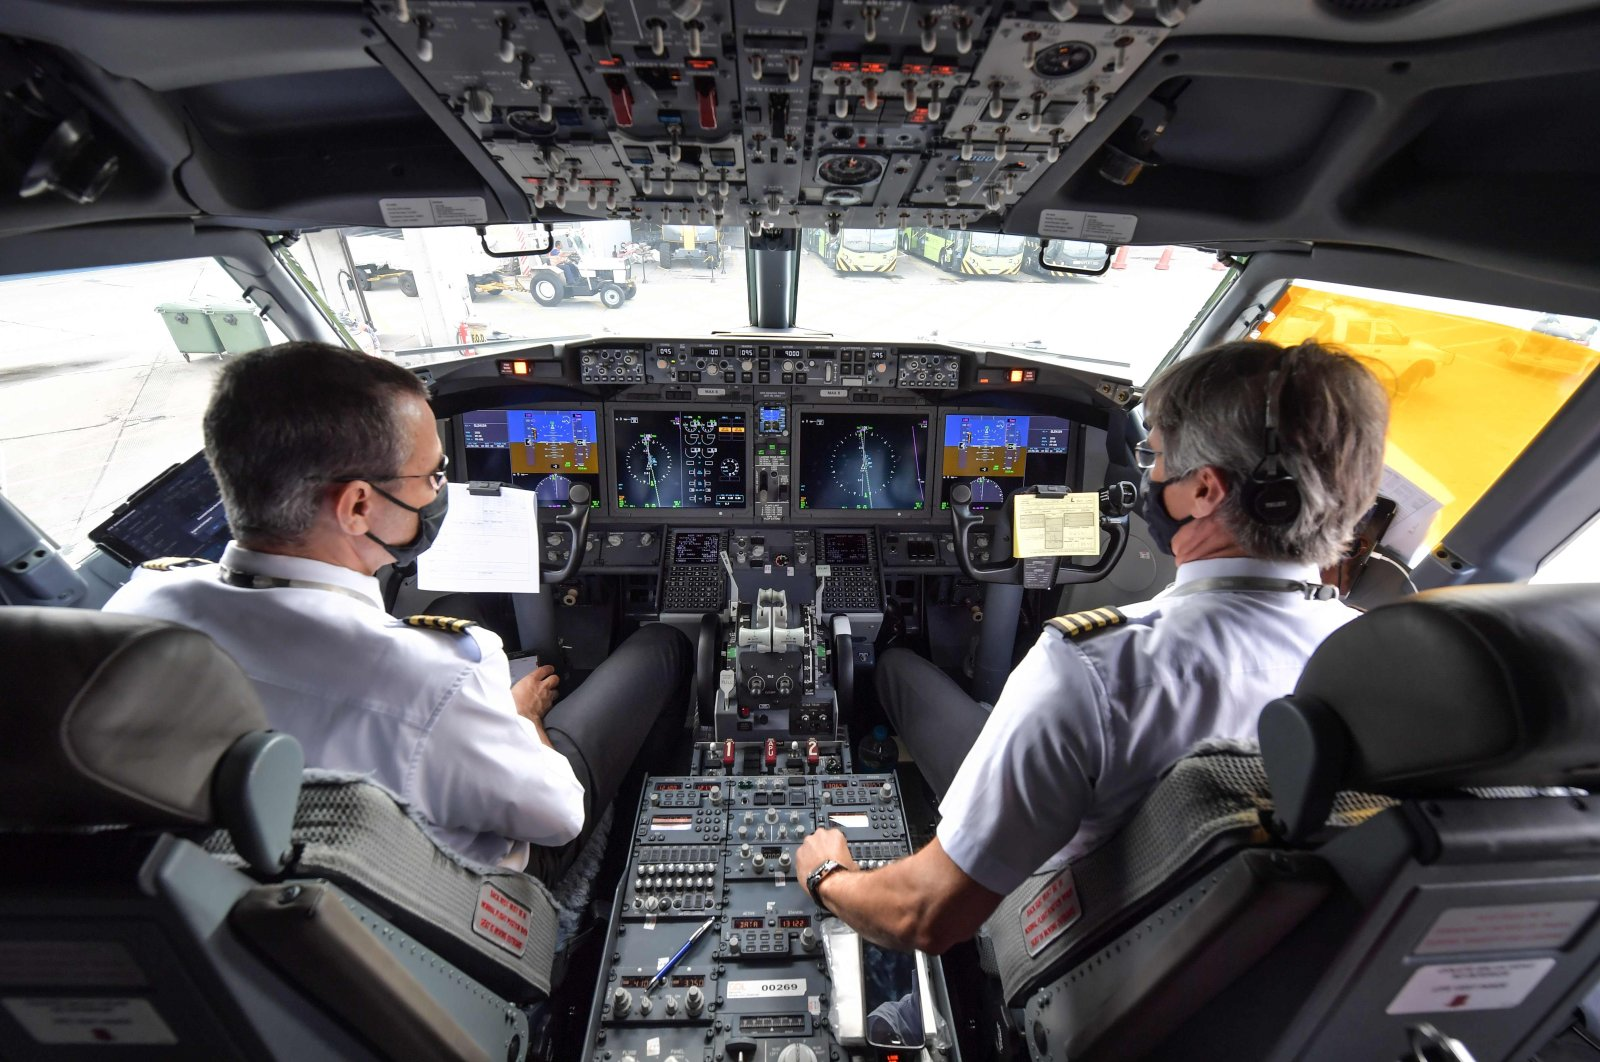 Pilots are pictured in the cockpit of a Boeing 737 Max aircraft operated by low-cost airline Gol as it sits on the tarmac before takeoff at Guarulhos International Airport, near Sao Paulo, Brazil, Dec. 9, 2020. (AFP Photo)